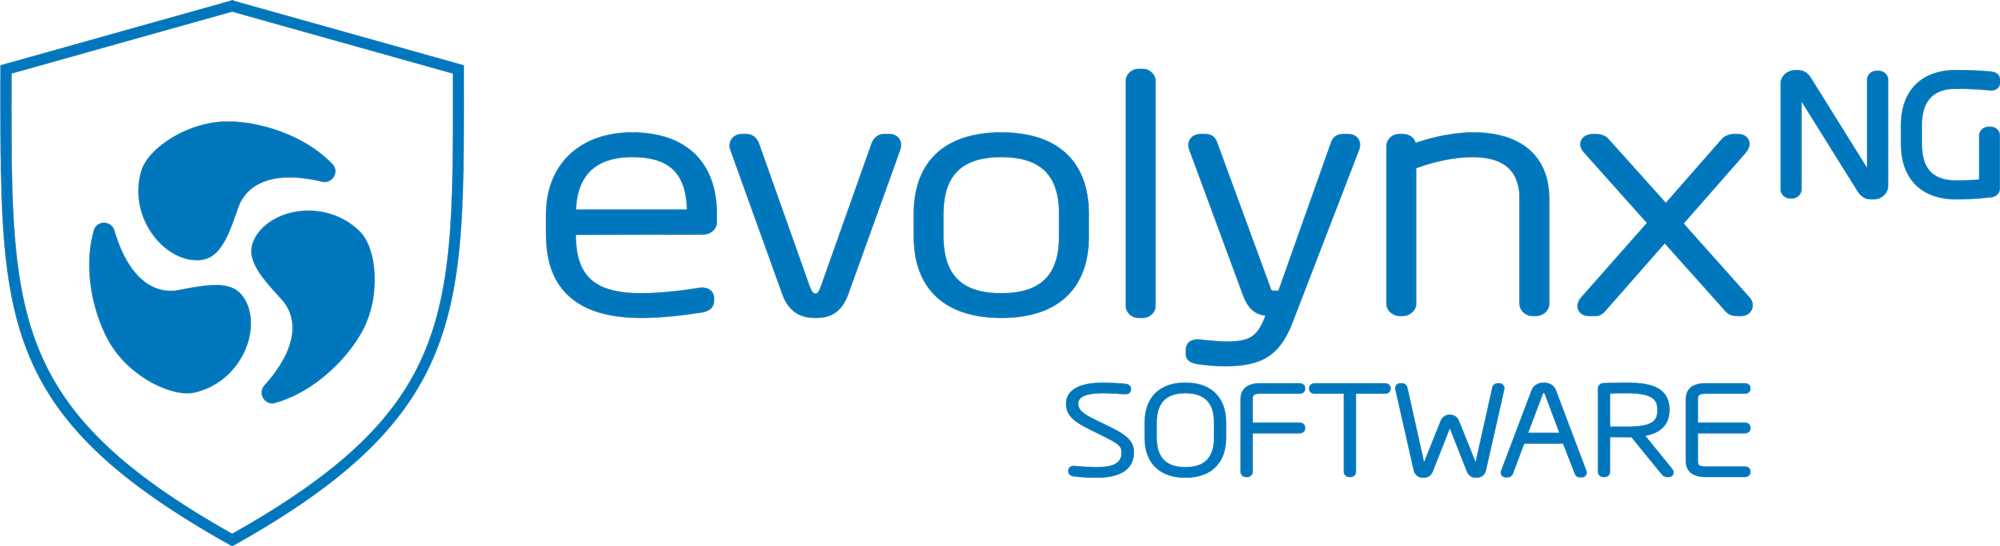 logo evolynxNG software